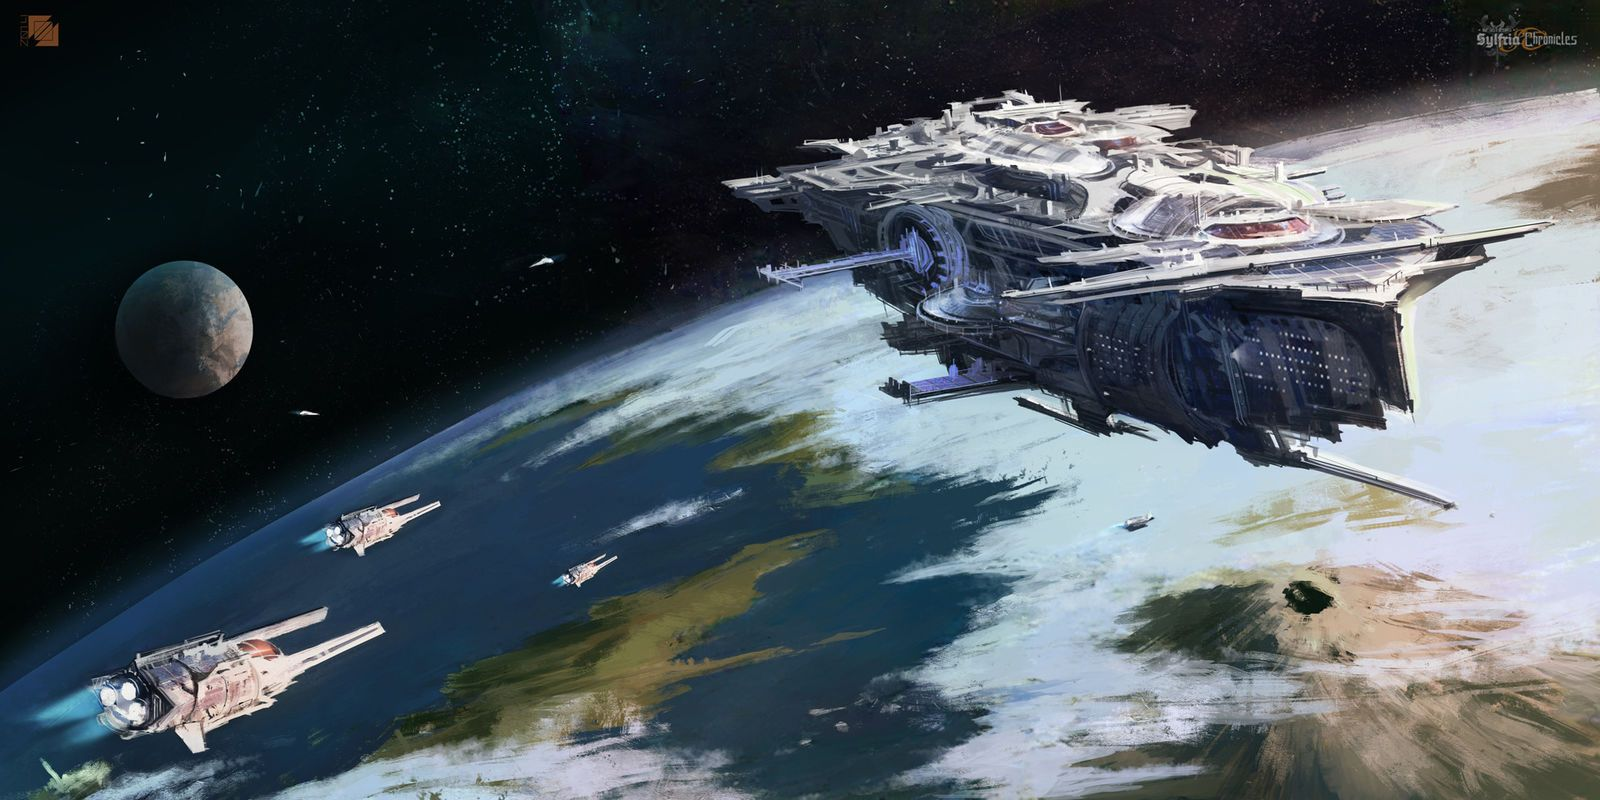 Black themed spaceship conceptual artwork and wallpapers 1 design - Concept Ships Spaceship Concept Art By Florent Llamas